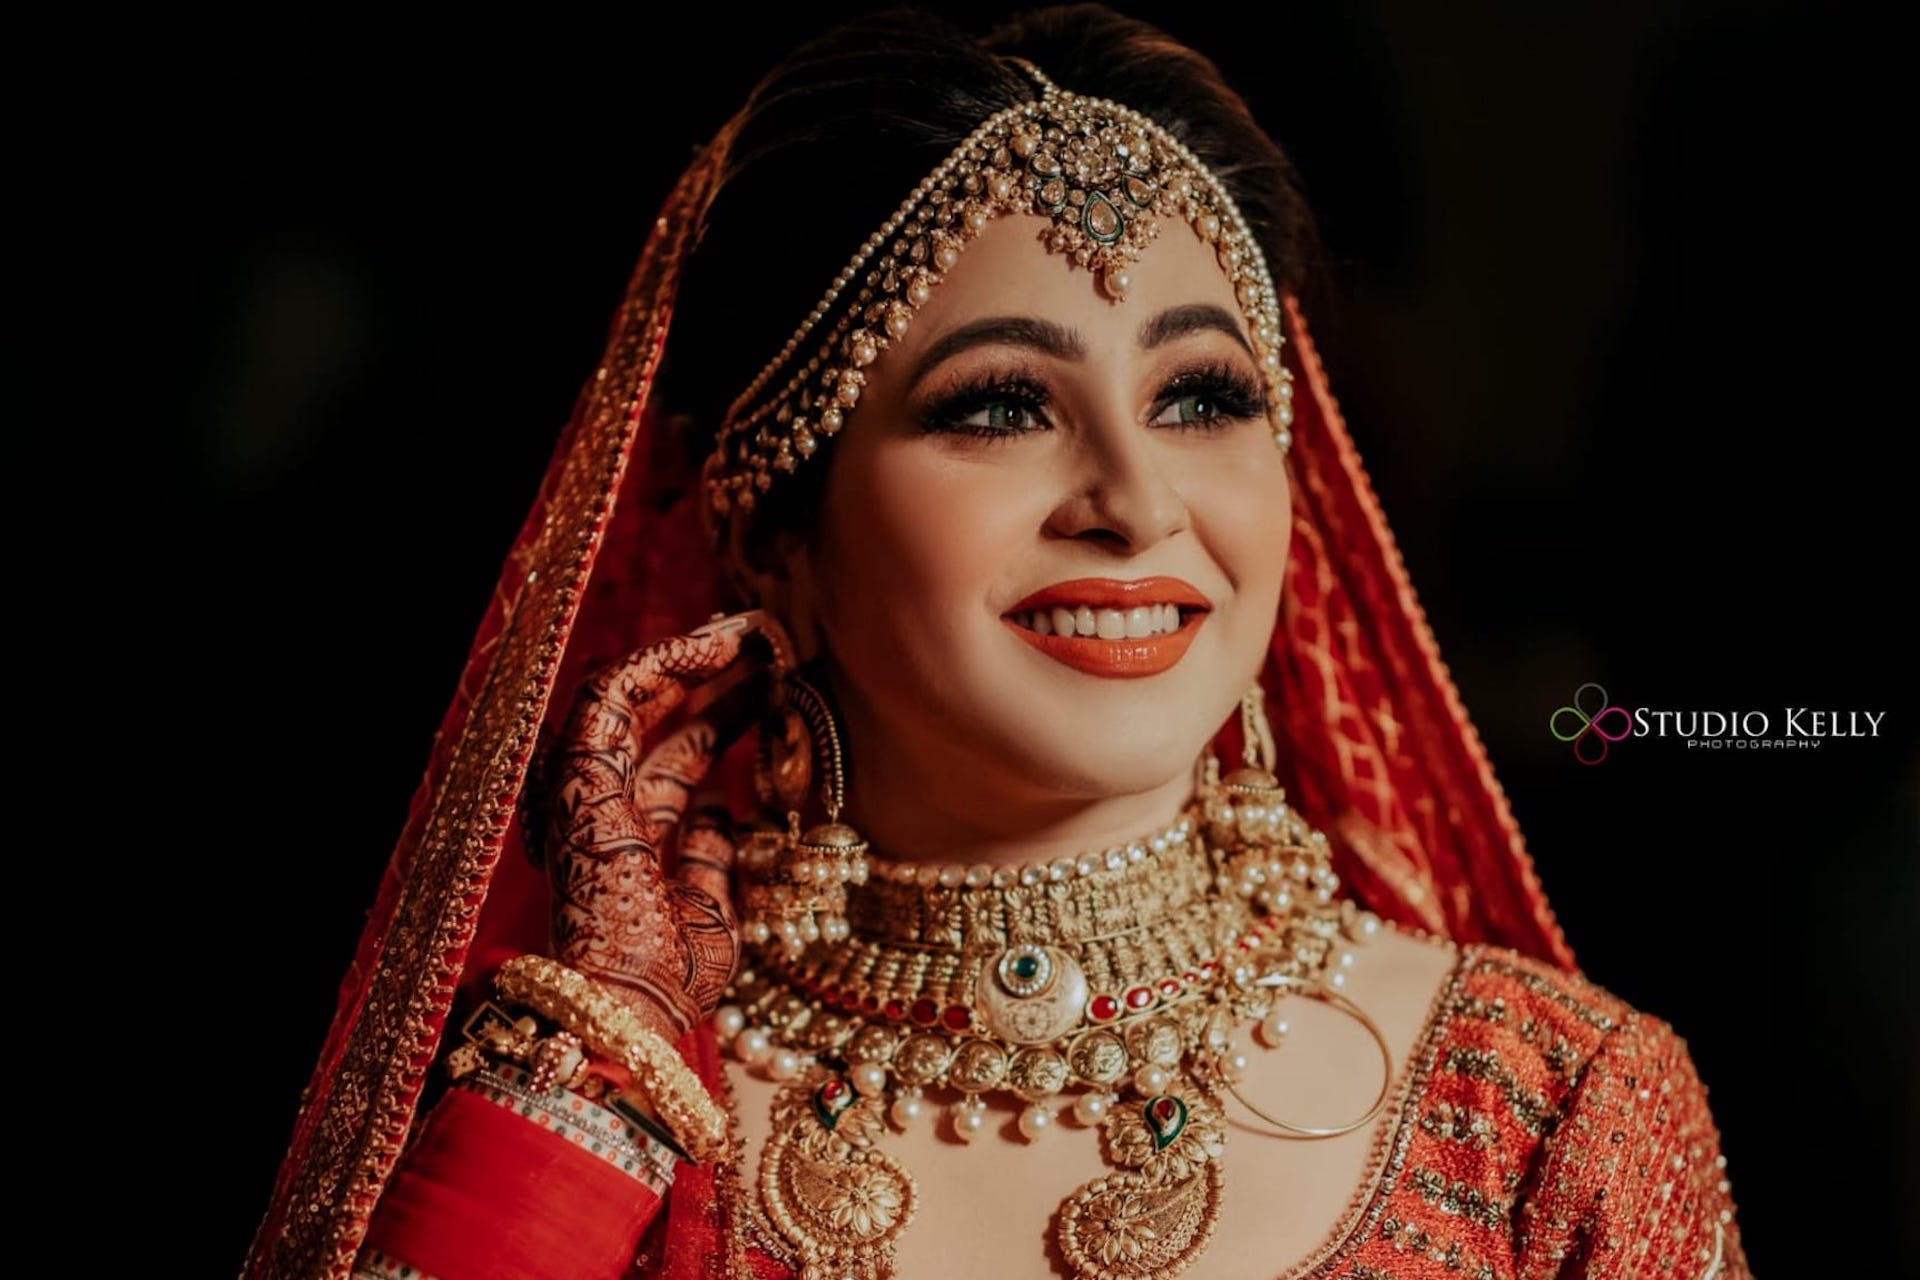 Indian Wedding Photography Trends